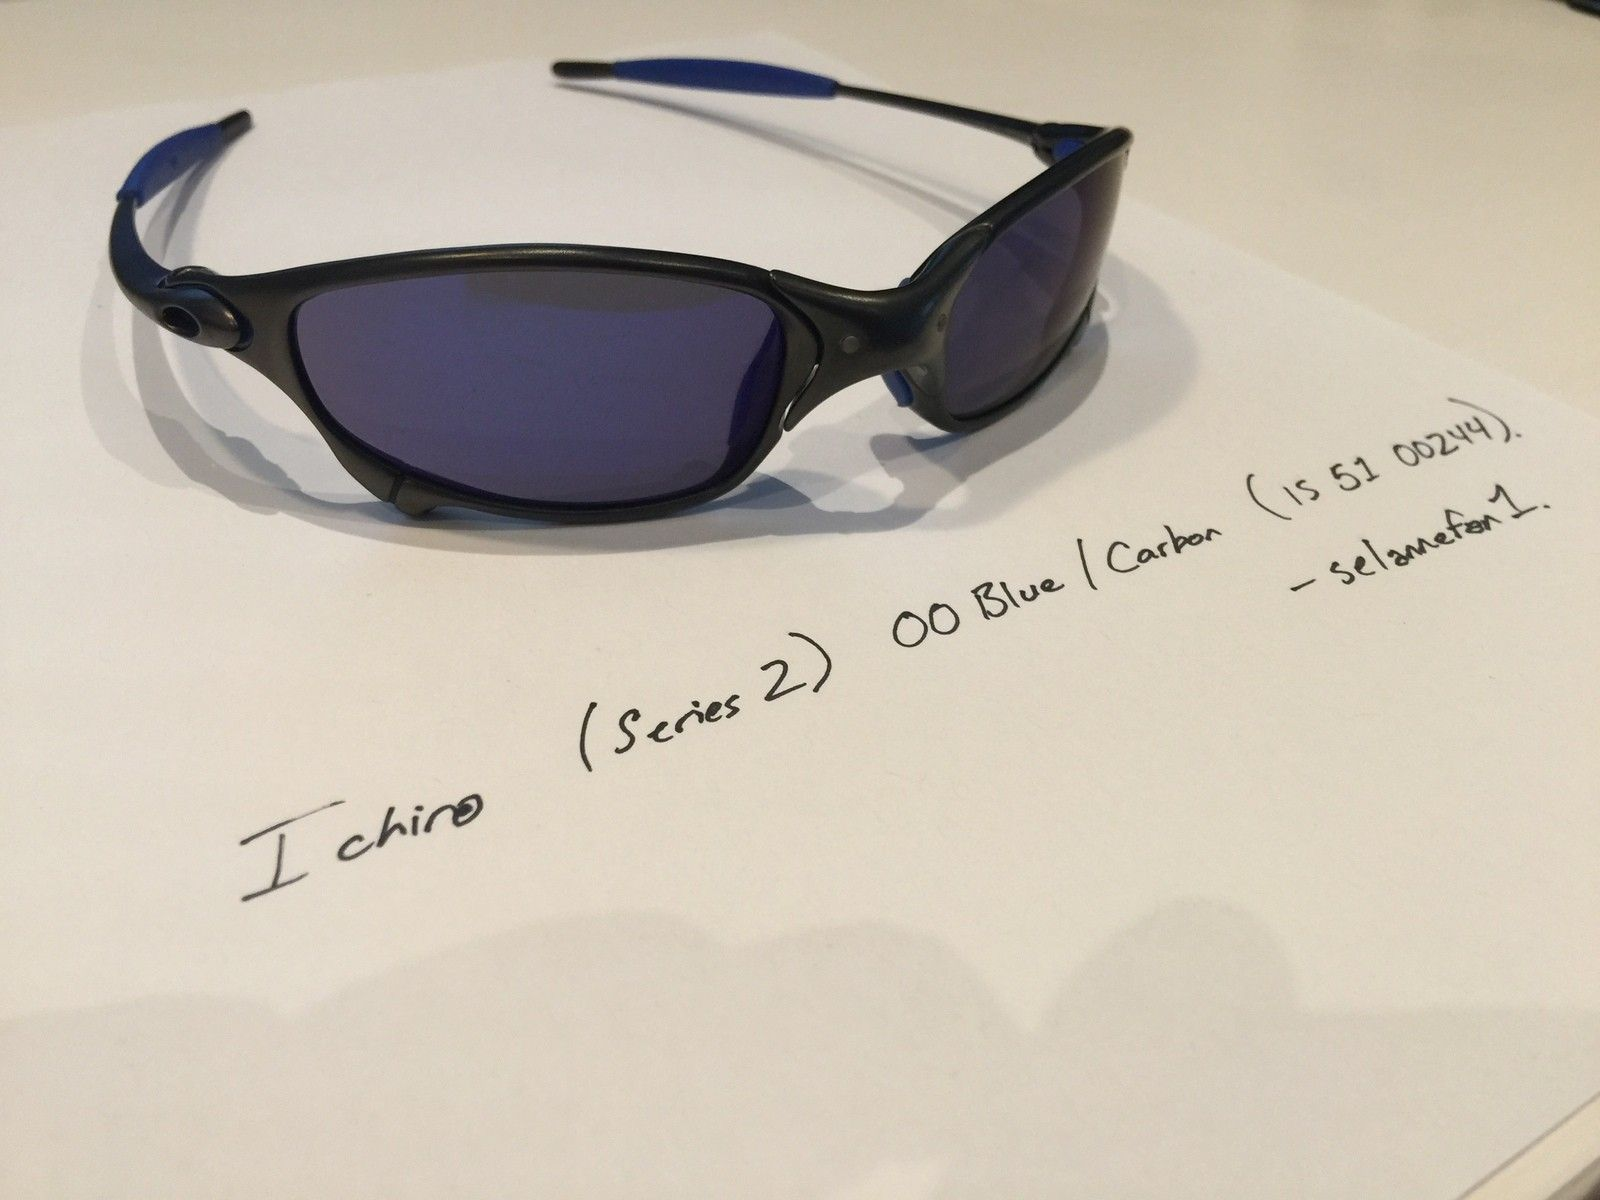 Ichiro OO Blue / Carbon Juliets (with Serial and Box) - IMG_3828.JPG